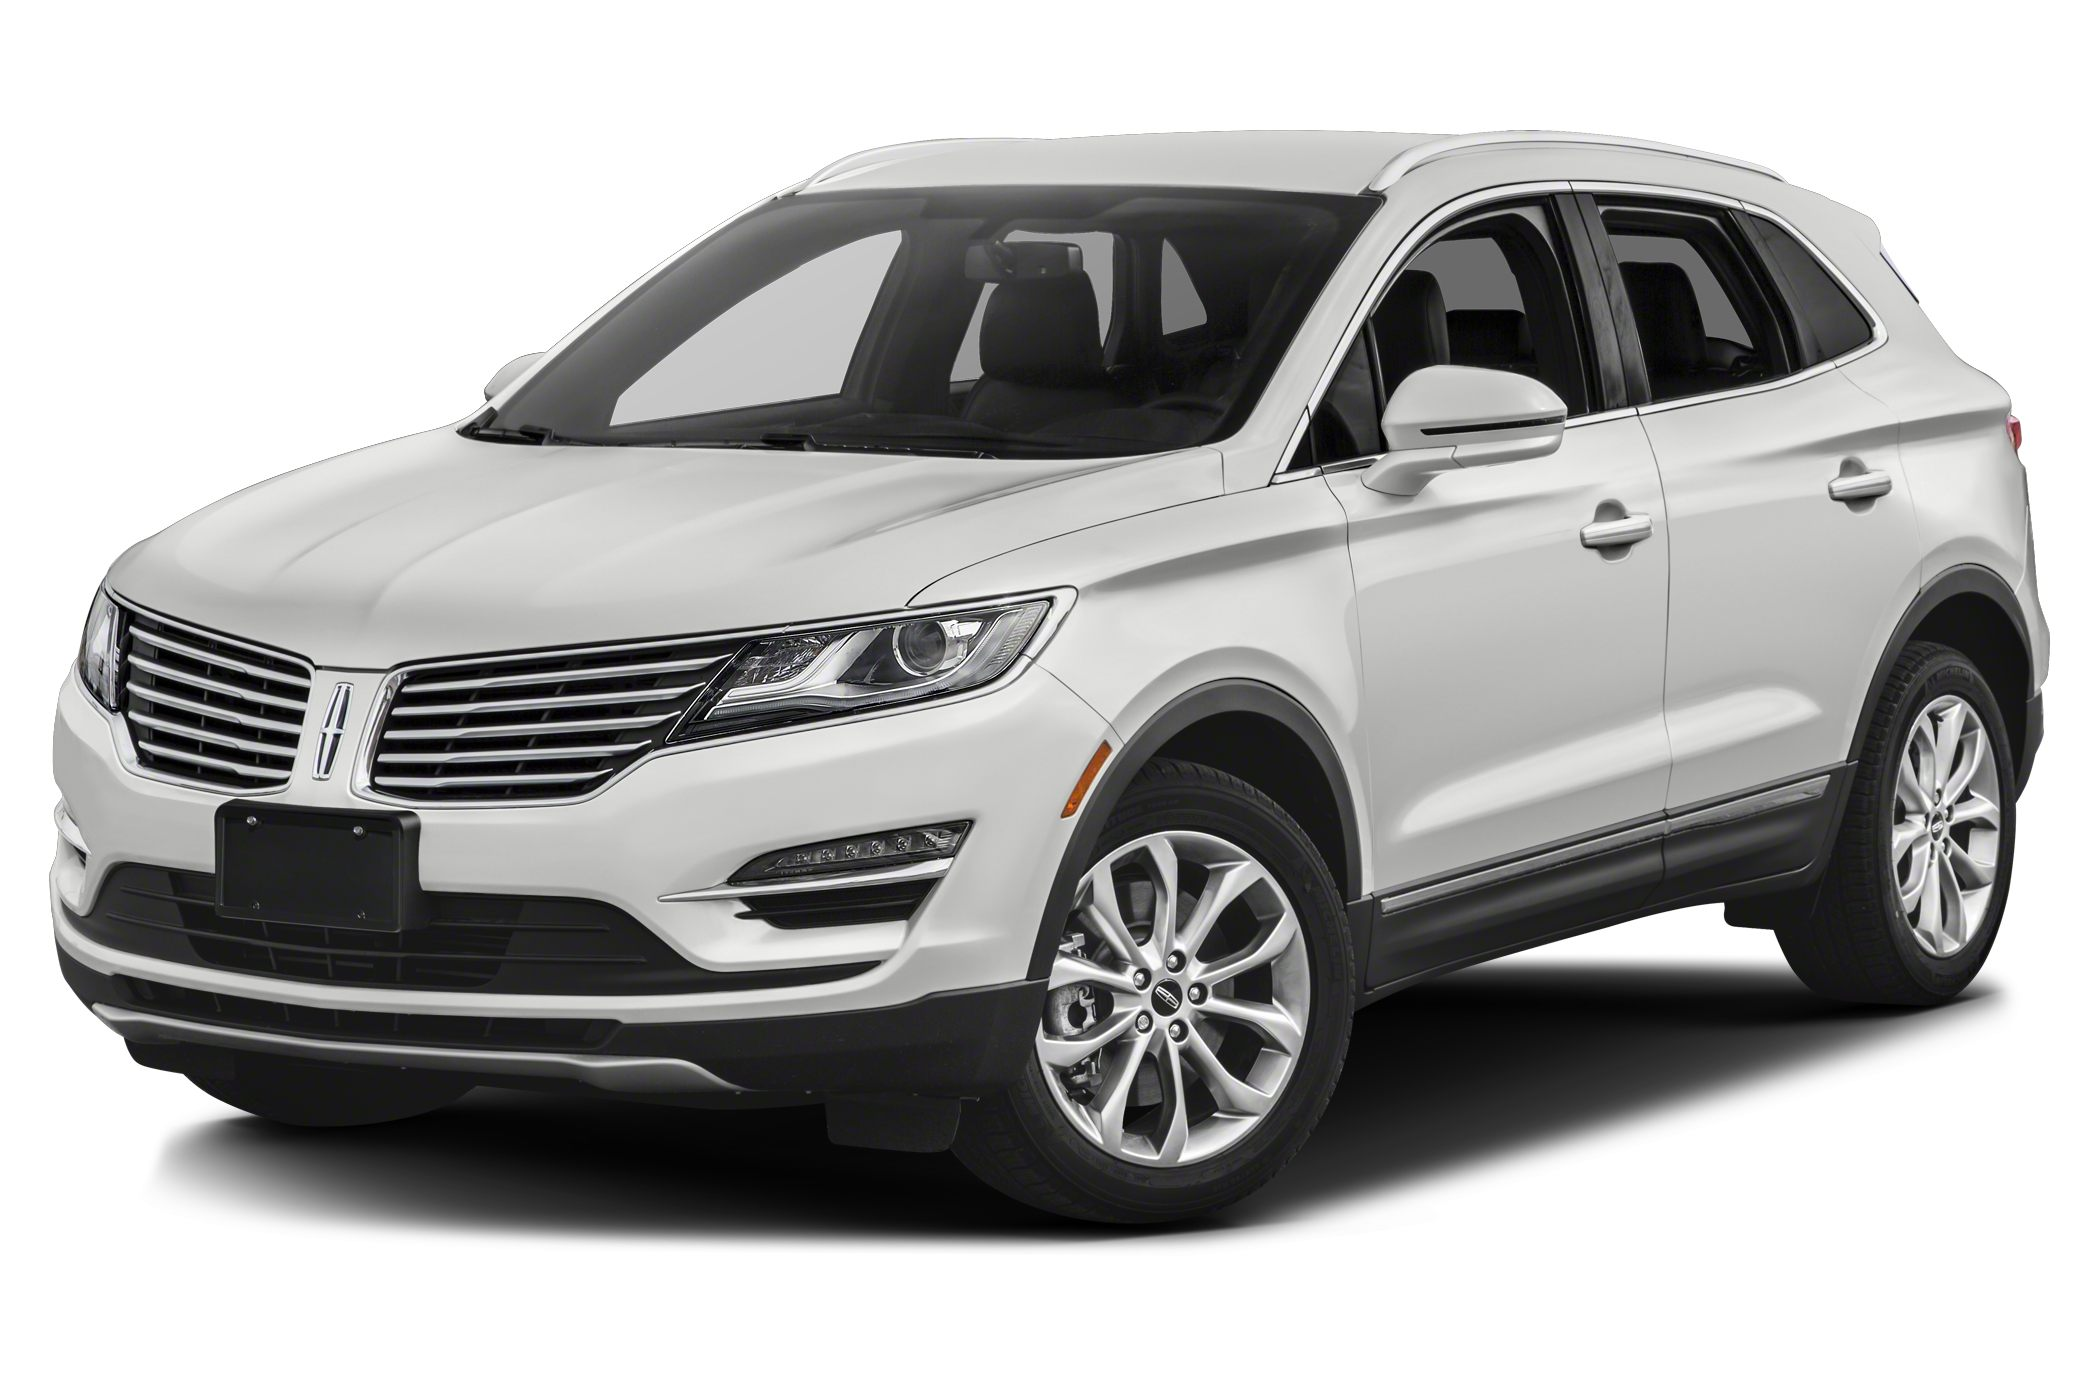 2015 Lincoln MKC Base SUV for sale in Camdenton for $41,664 with 0 miles